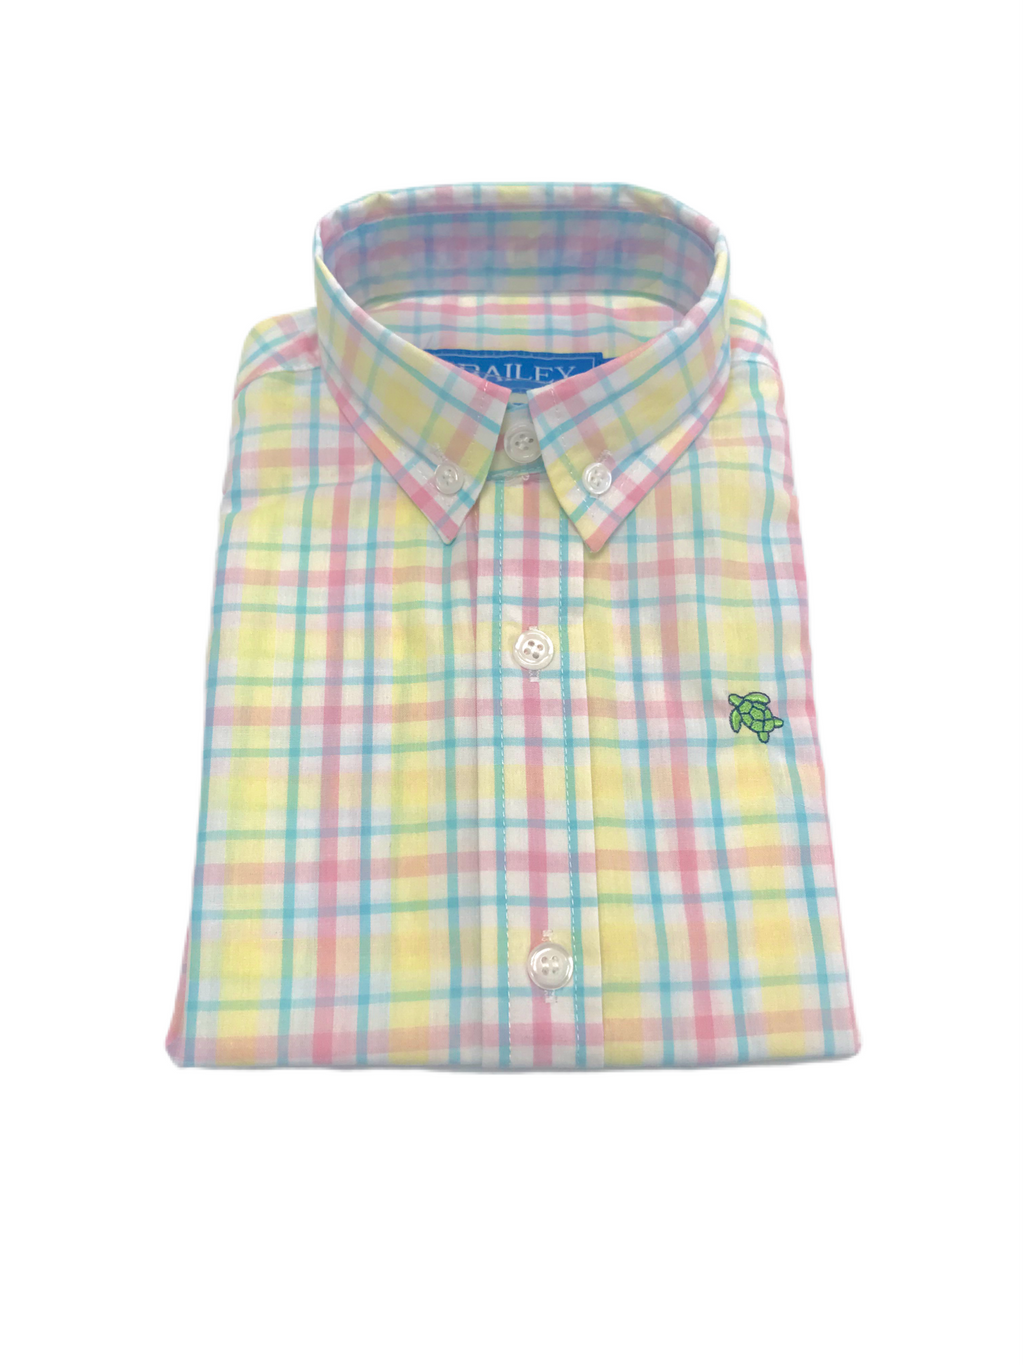 J. Bailey Roscoe Kiawah Button Down